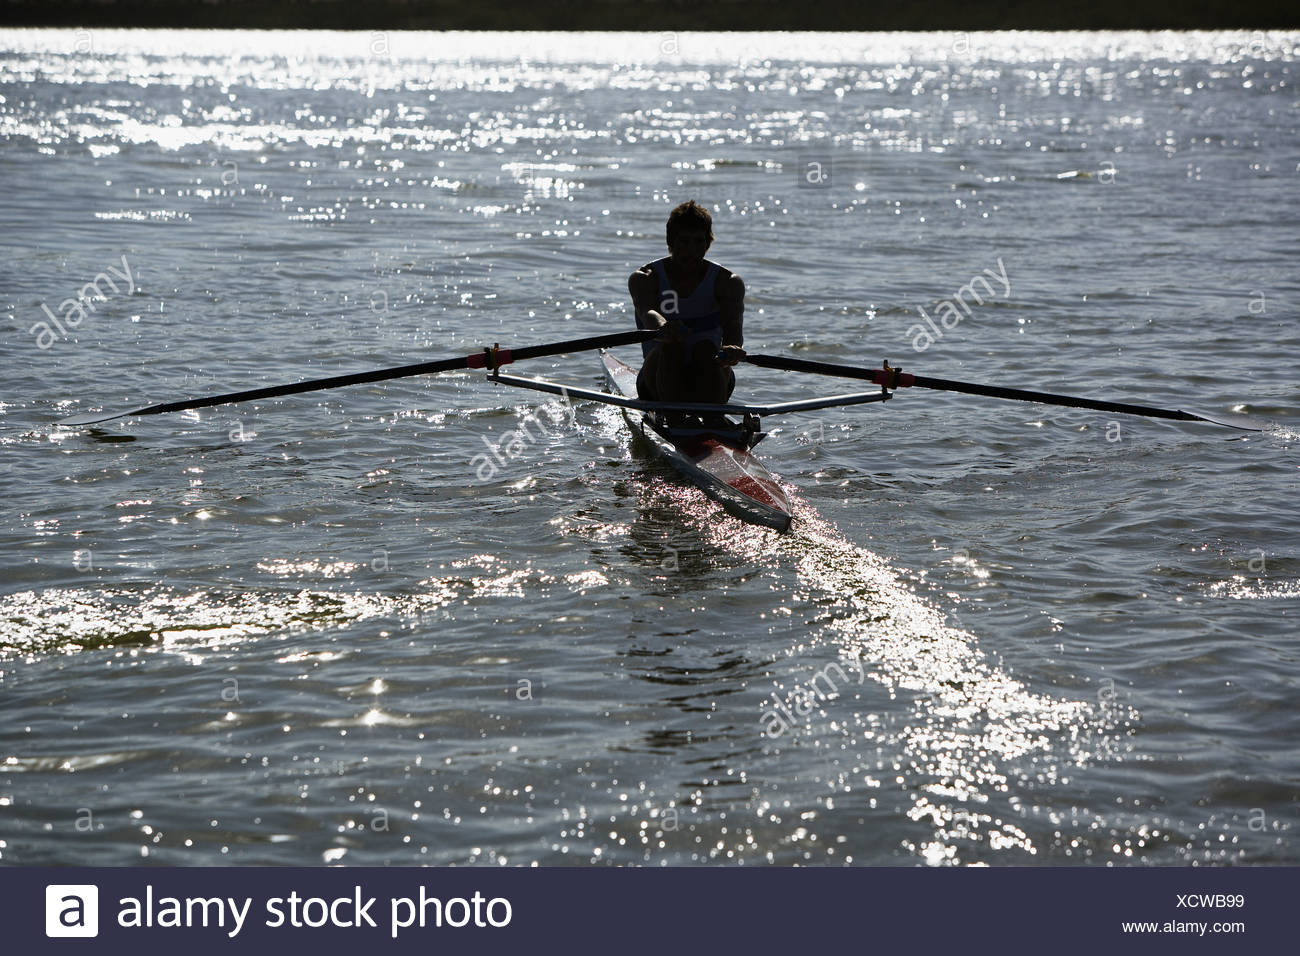 Athlete on a small row boat - Stock Image